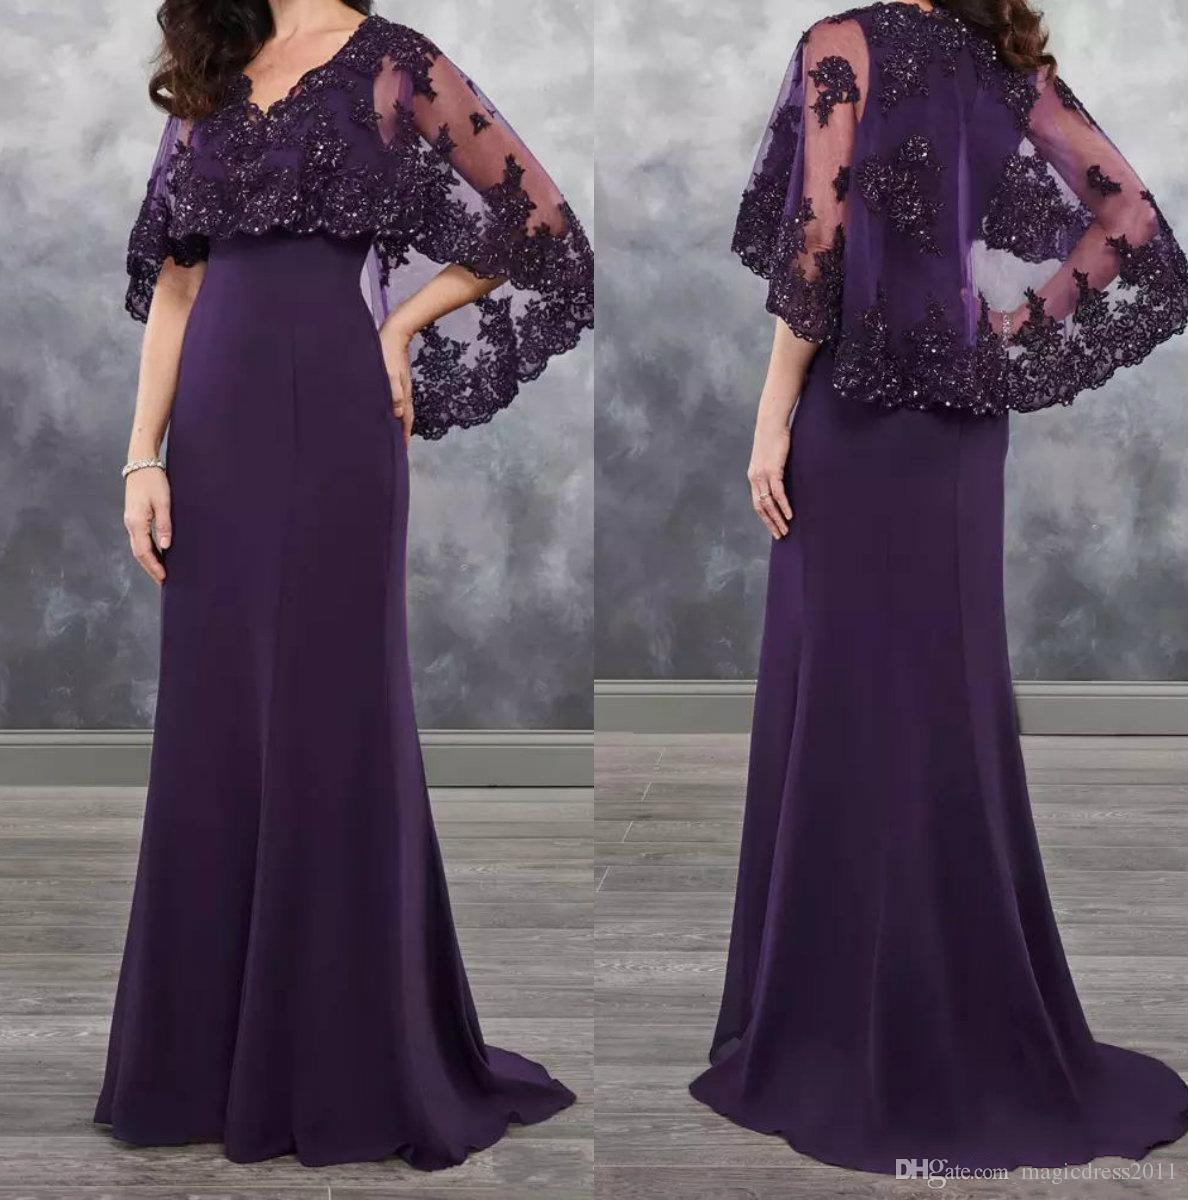 2662c6f6a59 2018 Dark Purple Mother Of The Bride Dresses Chiffon With Bolero Sheer With  Applique Shining Sequins New Arrival Chiffon Wedding Guest Dress Mother  Groom ...